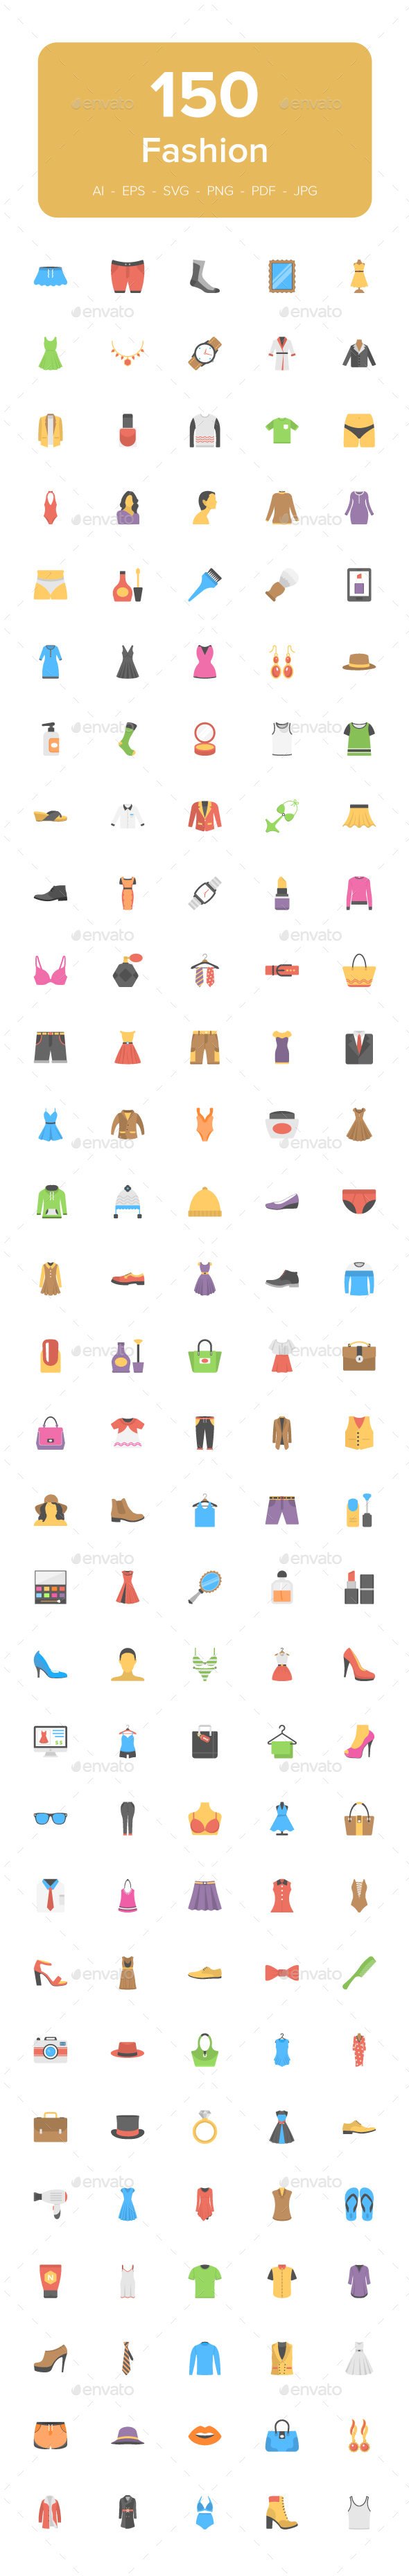 150 Fashion Flat Vector Icons - Icons